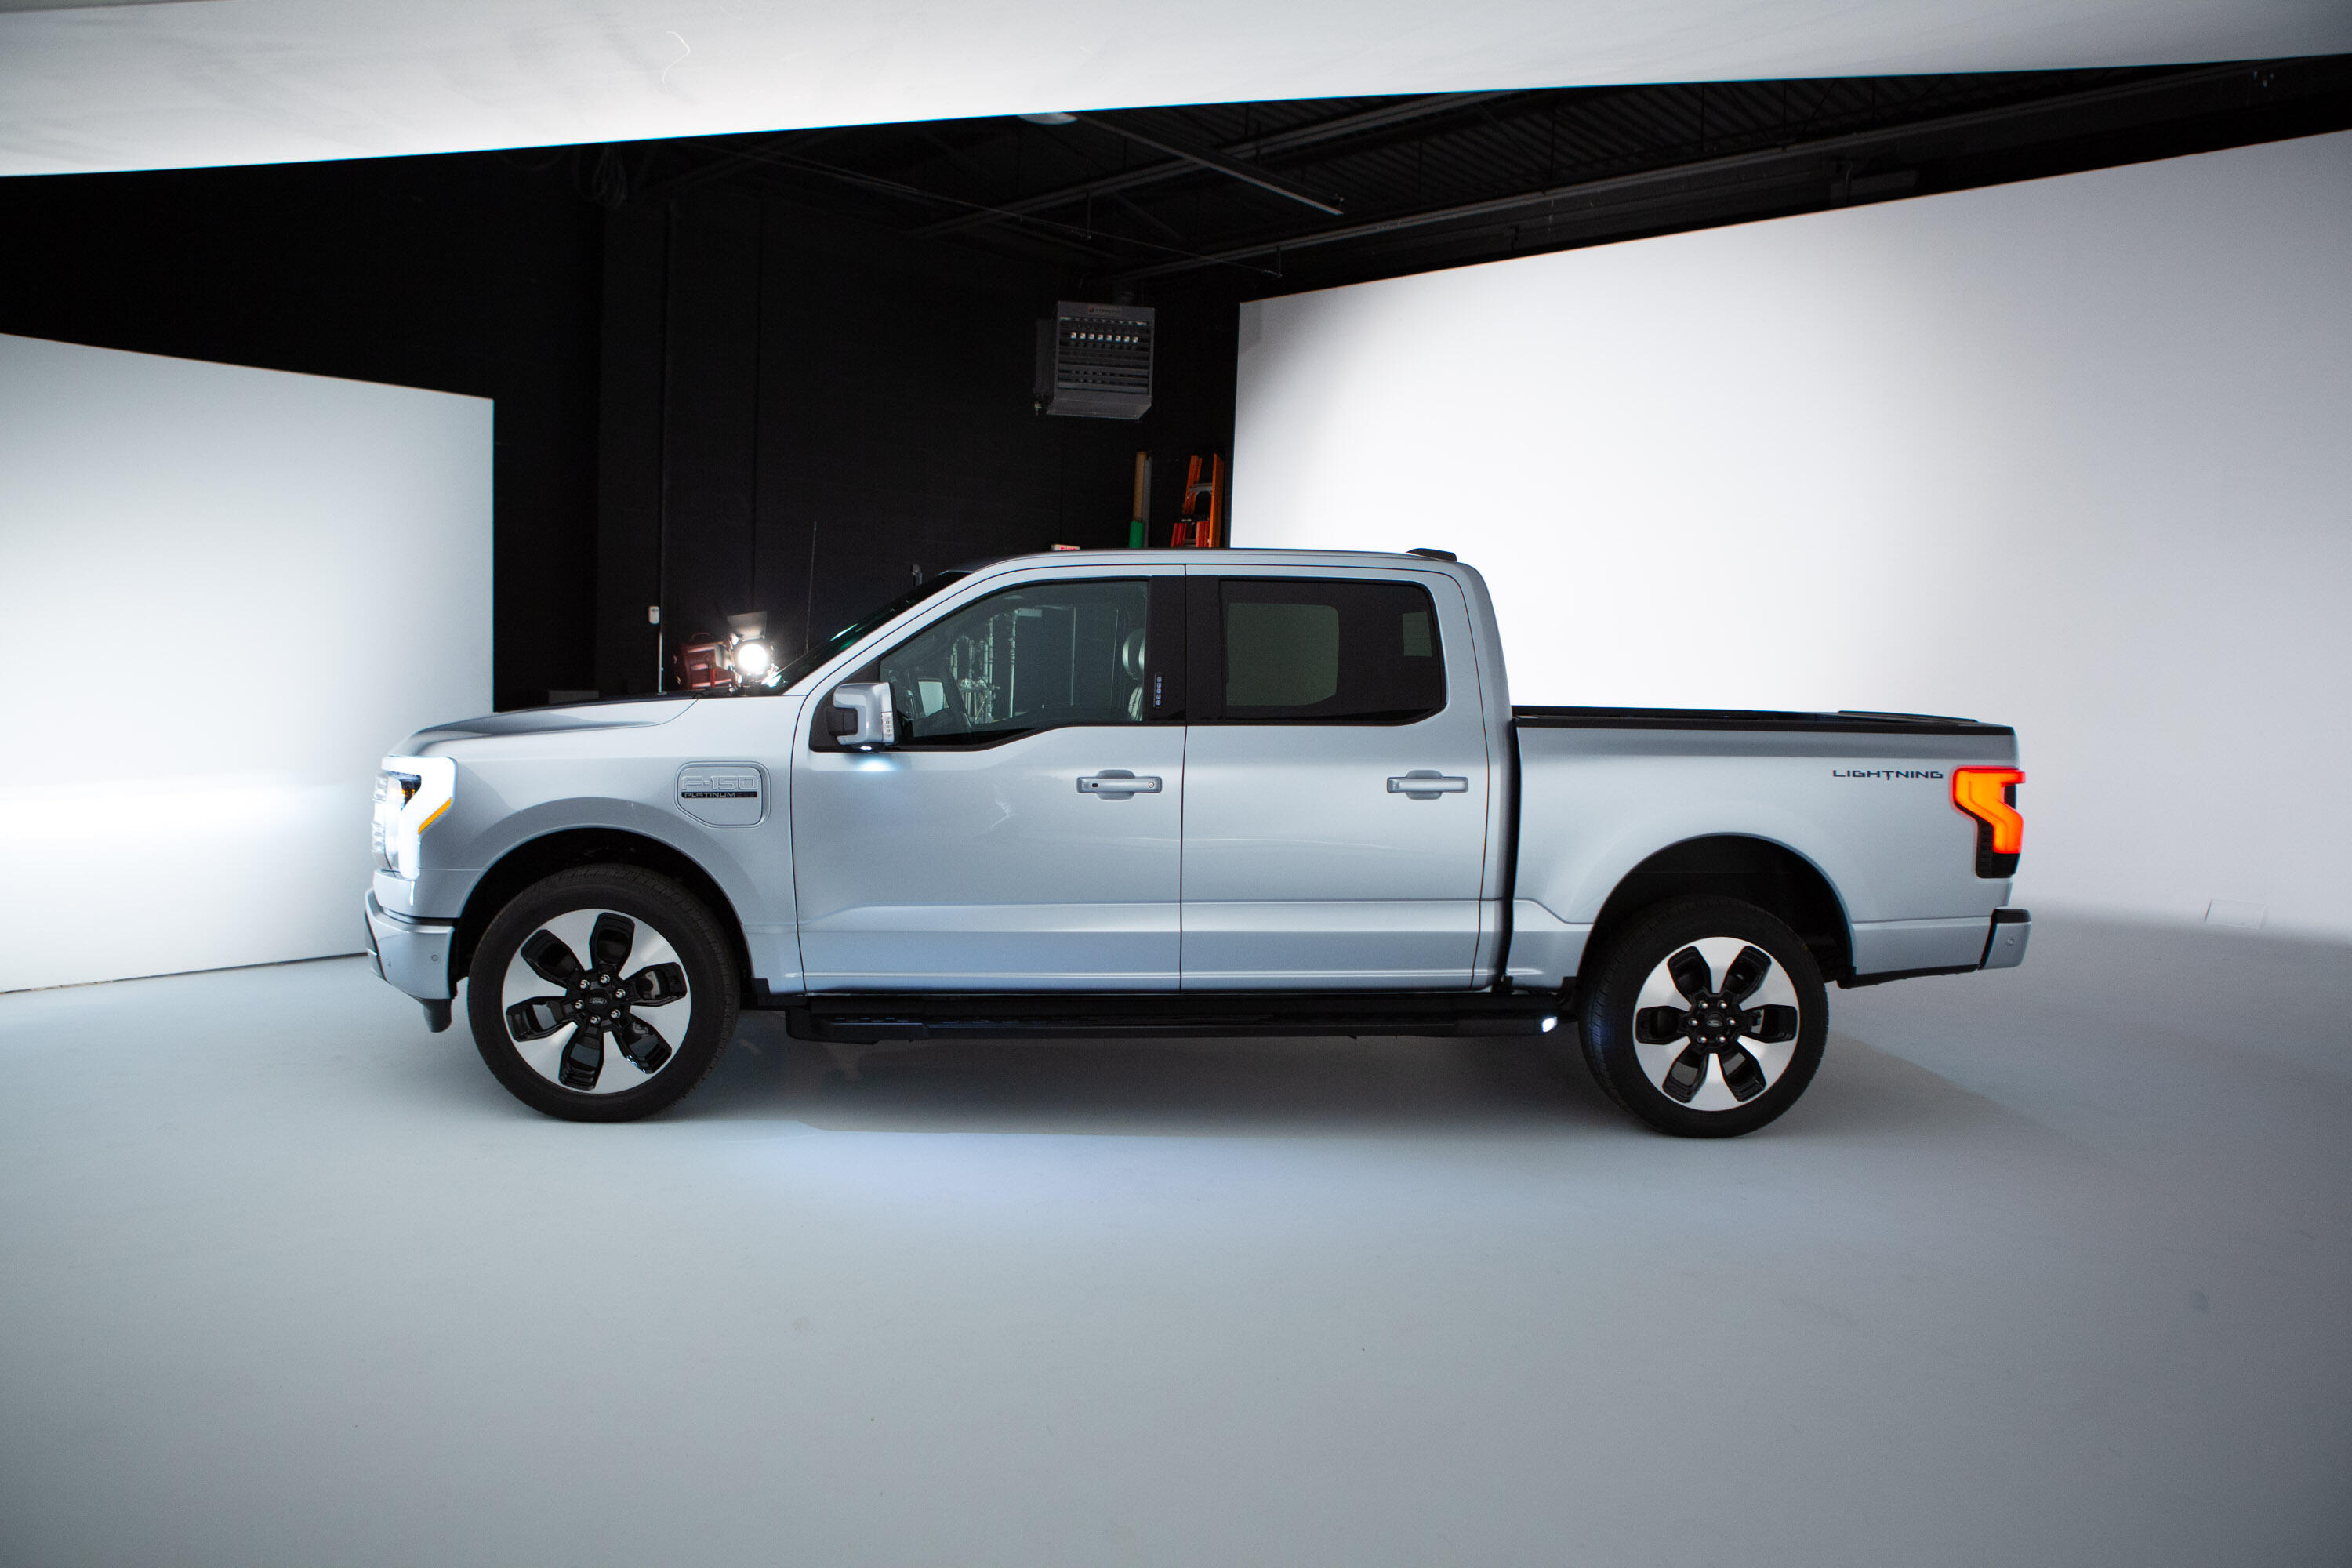 2022 Ford F-150 Lightning - side view